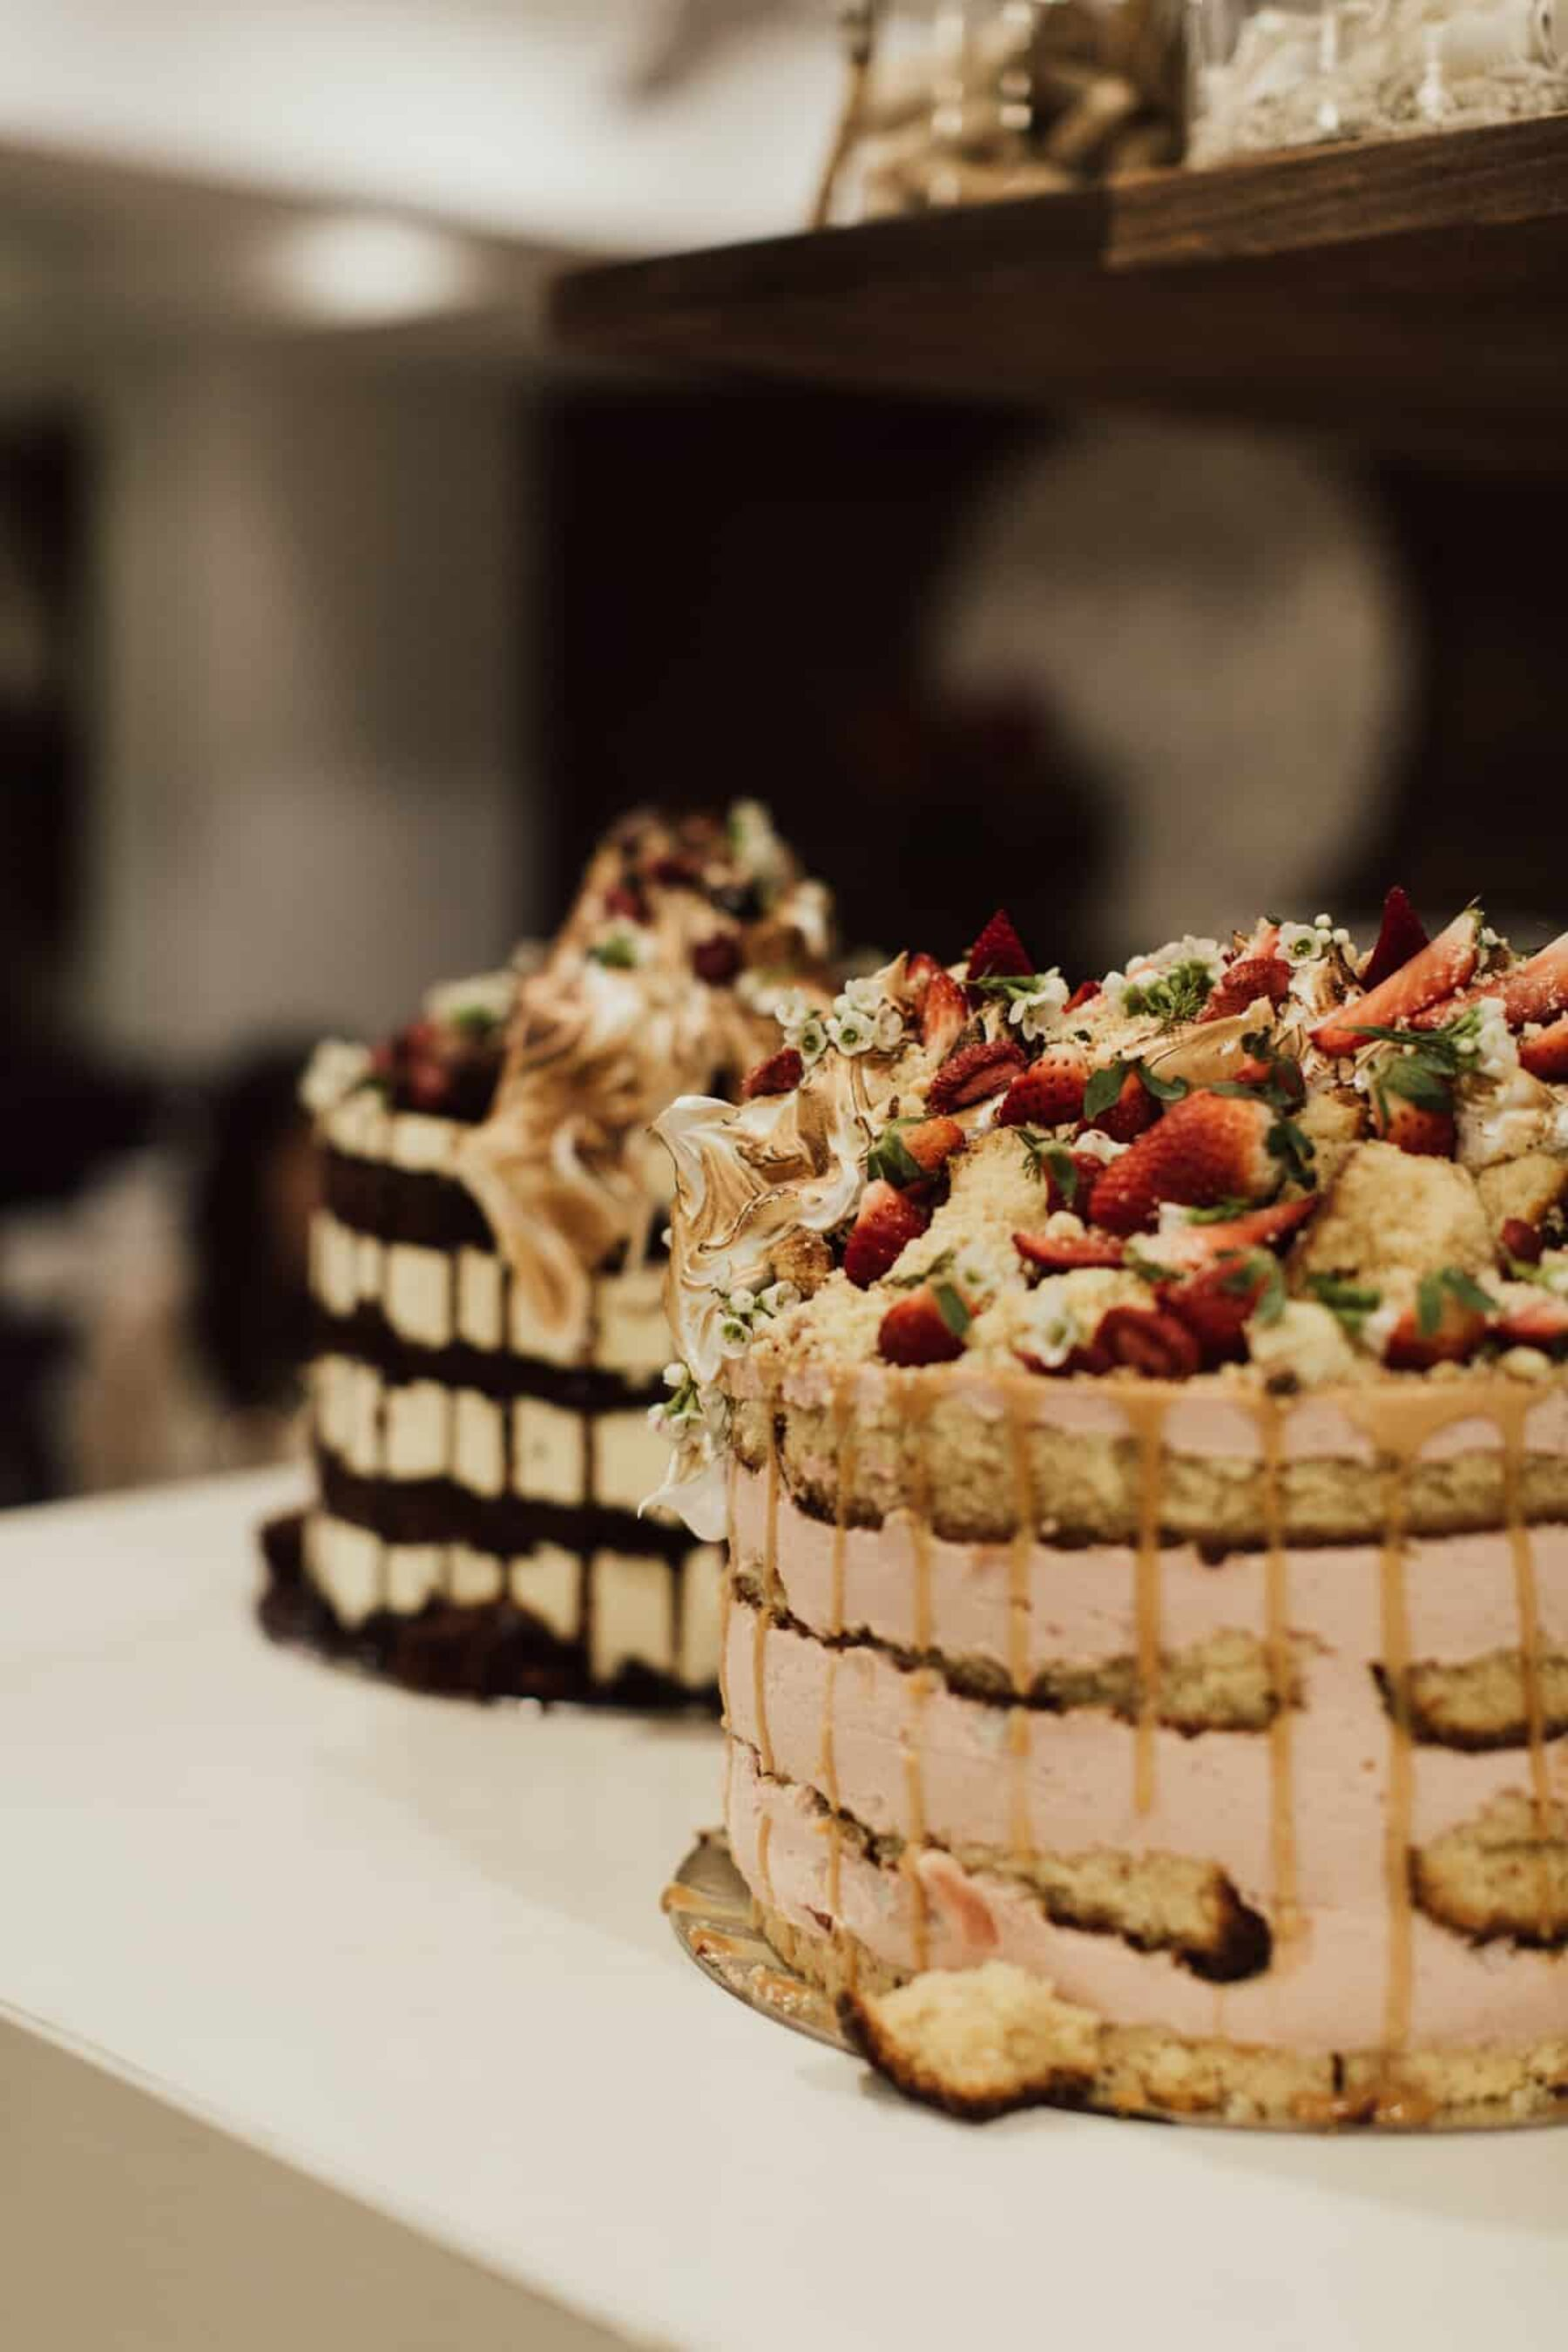 epic wedding cakes by Andy Bowdy